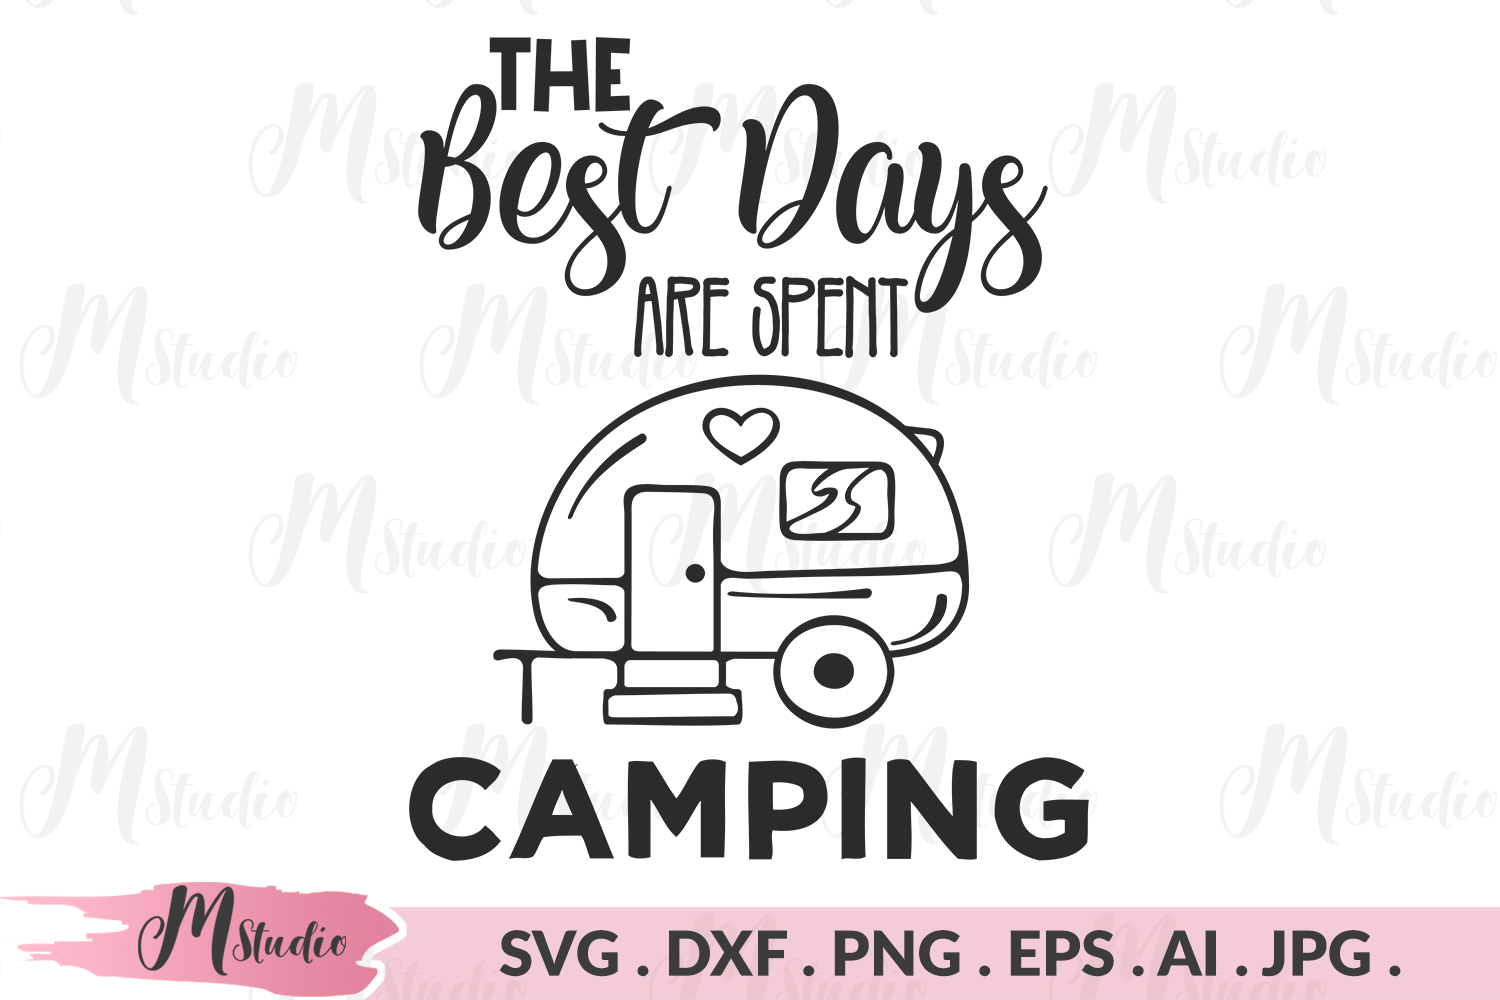 The Best Days Are Spent Camping svg. example image 1